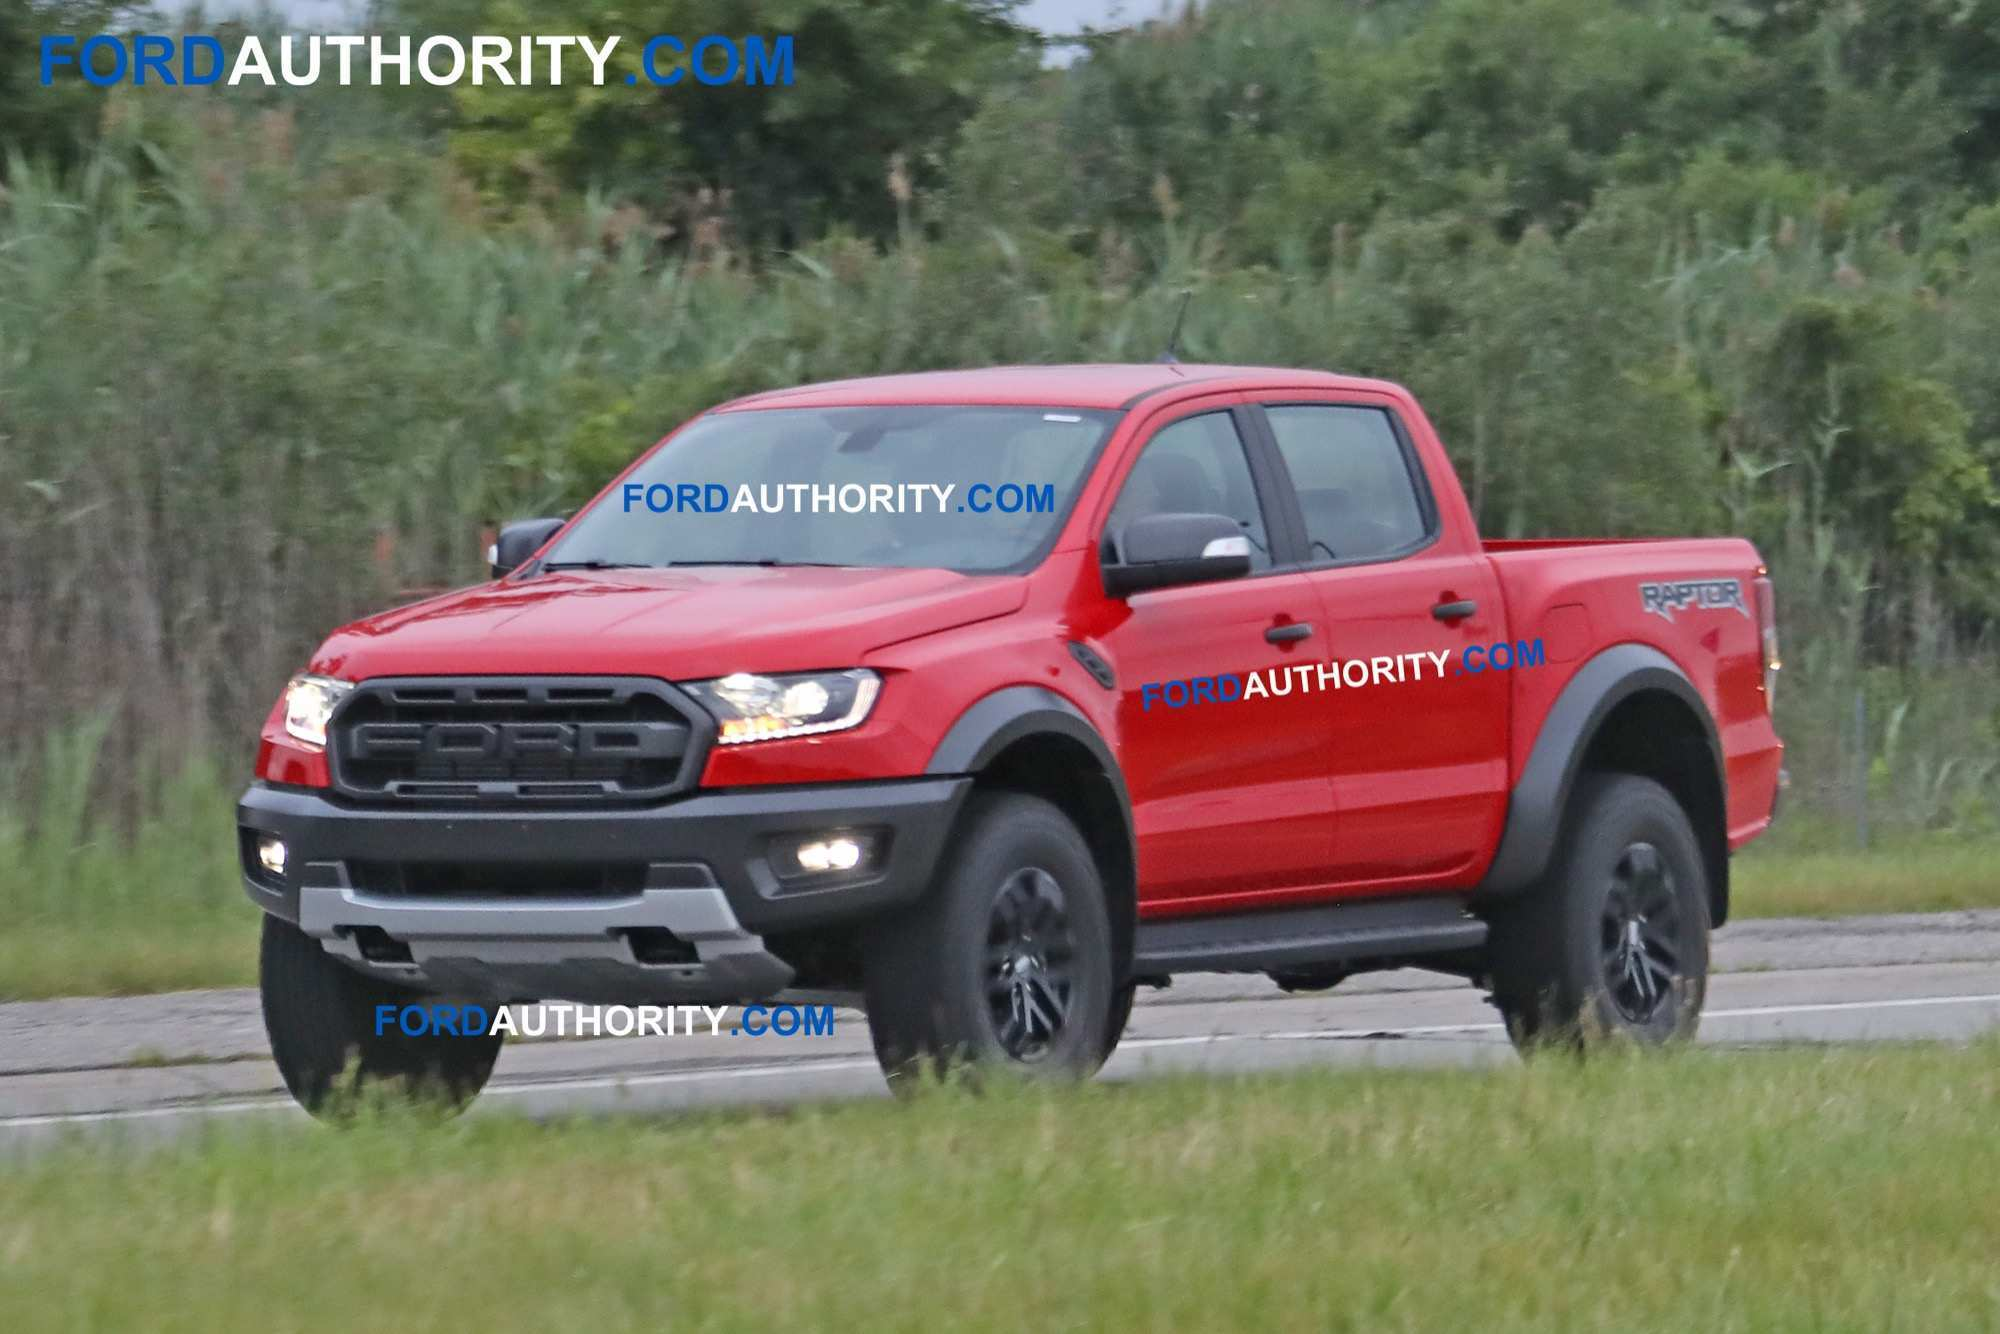 76 Great 2019 Ford Ranger Dimensions Picture by 2019 Ford Ranger Dimensions